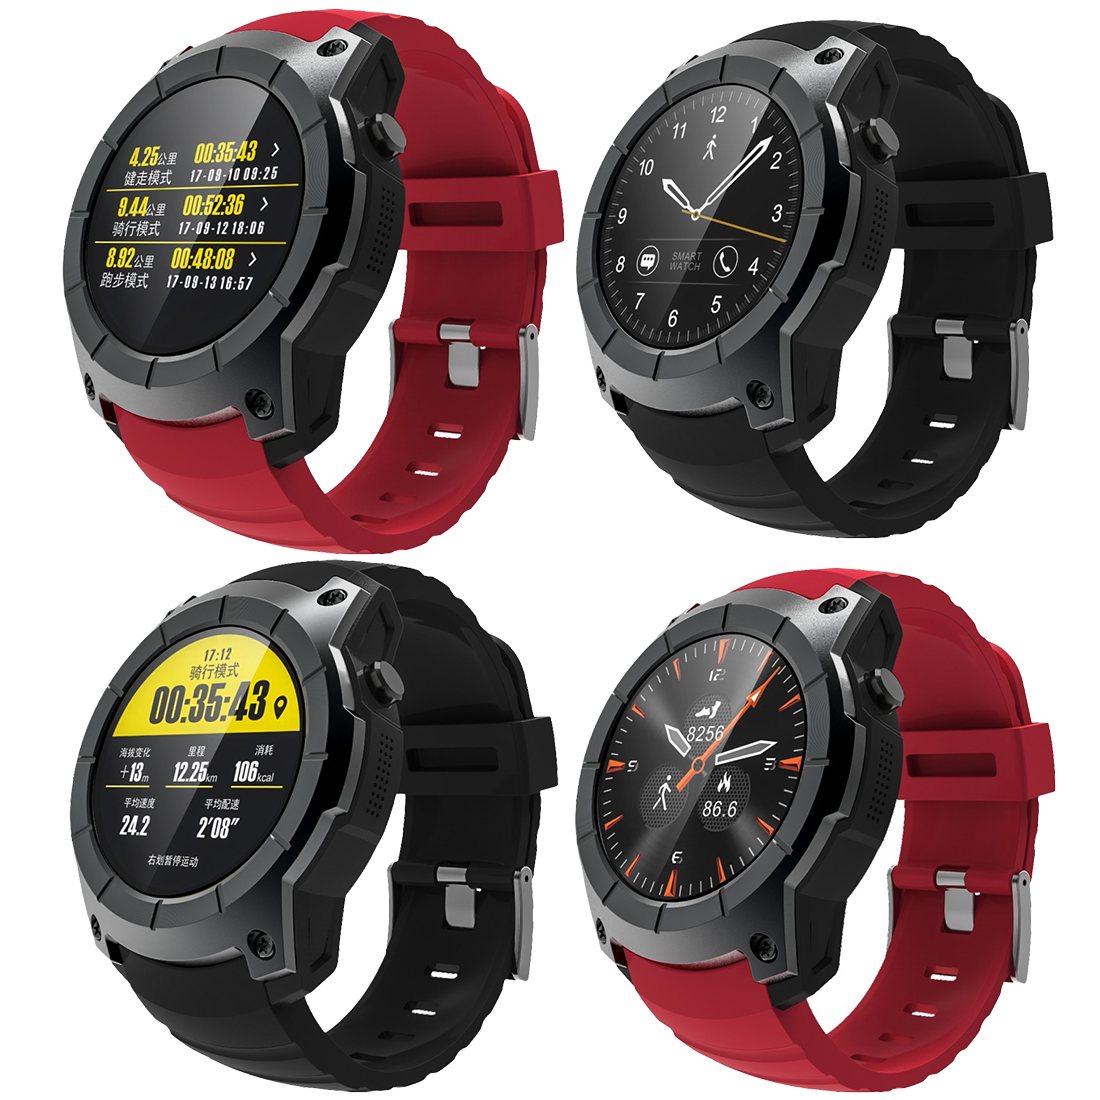 S985 3G WIFI GPS bluetooth smart watch Android 5.1 MTK6580 CPU 1.39 inch 2.0MP camera smartwatch for iphone huawei phone watch n10b 3g wifi gps bluetooth smart watch android 5 1 mtk6580 cpu 1 39 inch 2 0mp camera smartwatch for iphone huawei phone watch